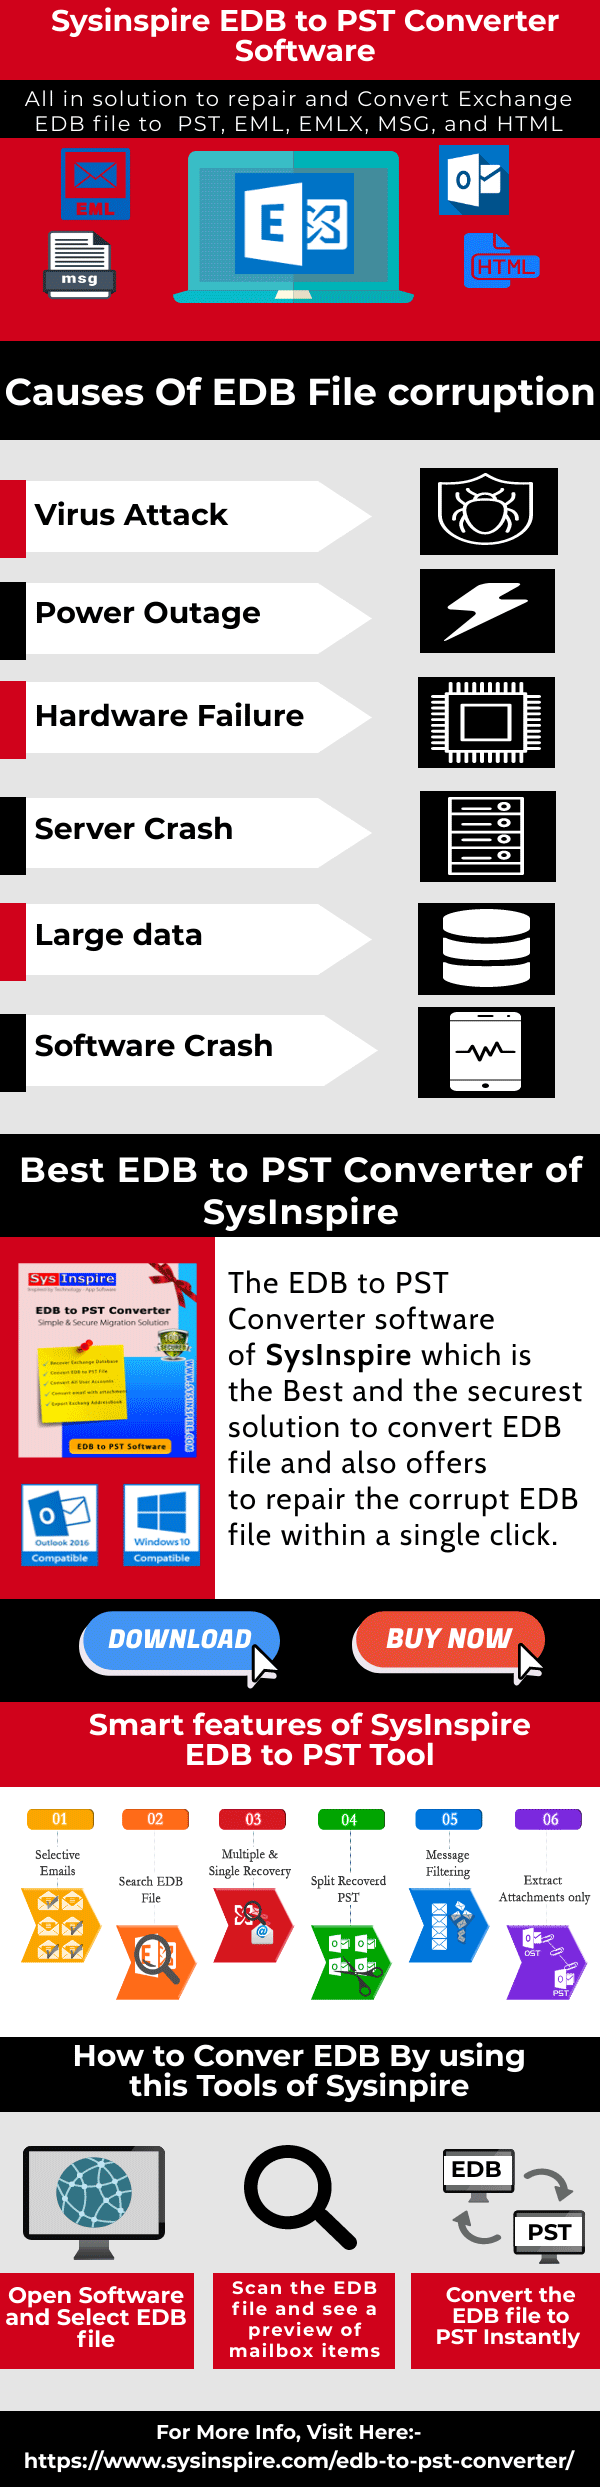 https://www.sysinspire.com/infographics/edb/edb-to-pst.png